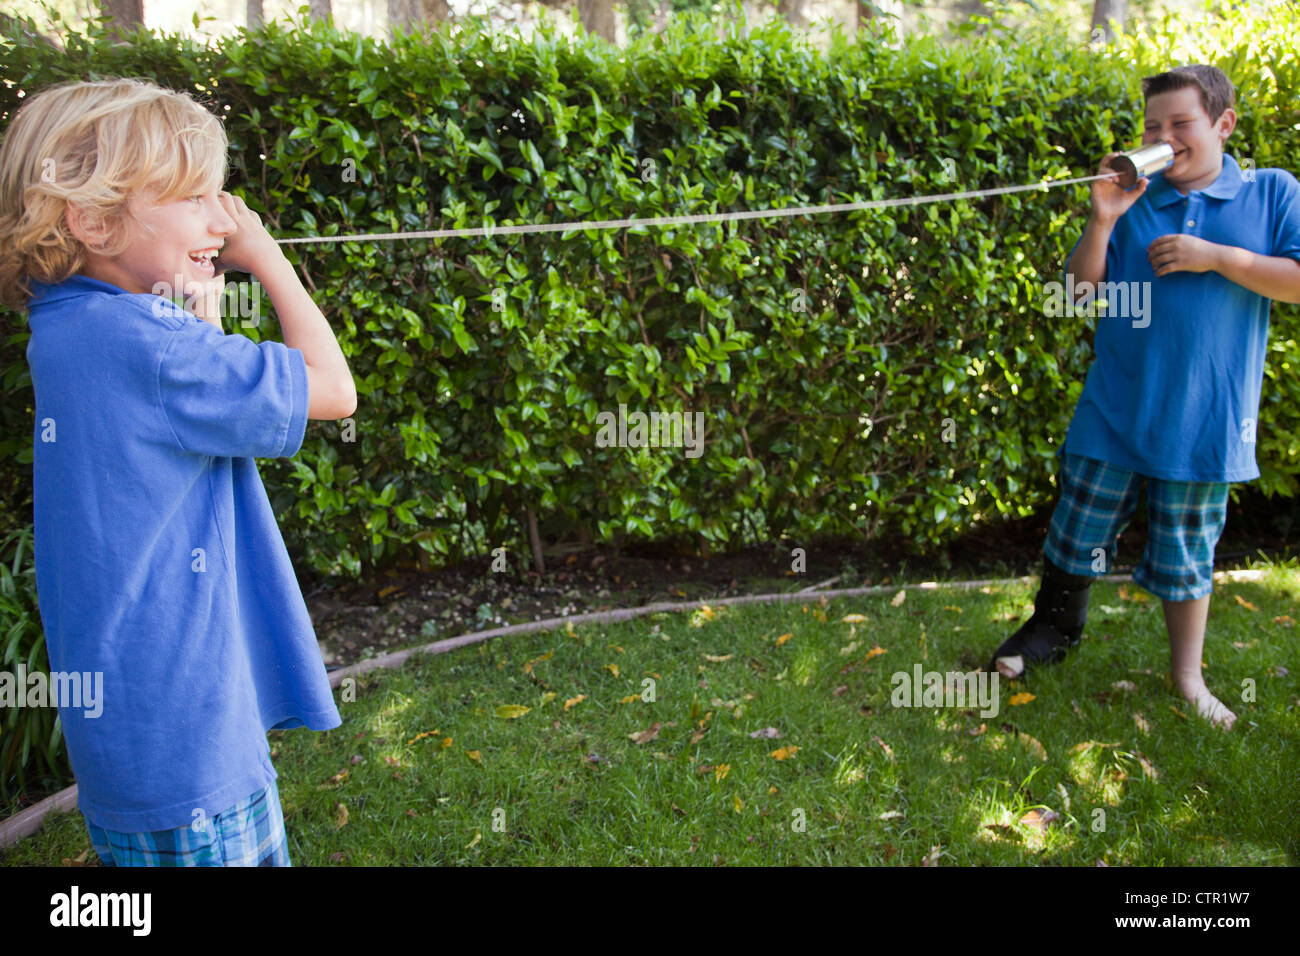 Two brothers talking on a can and string telephone. - Stock Image